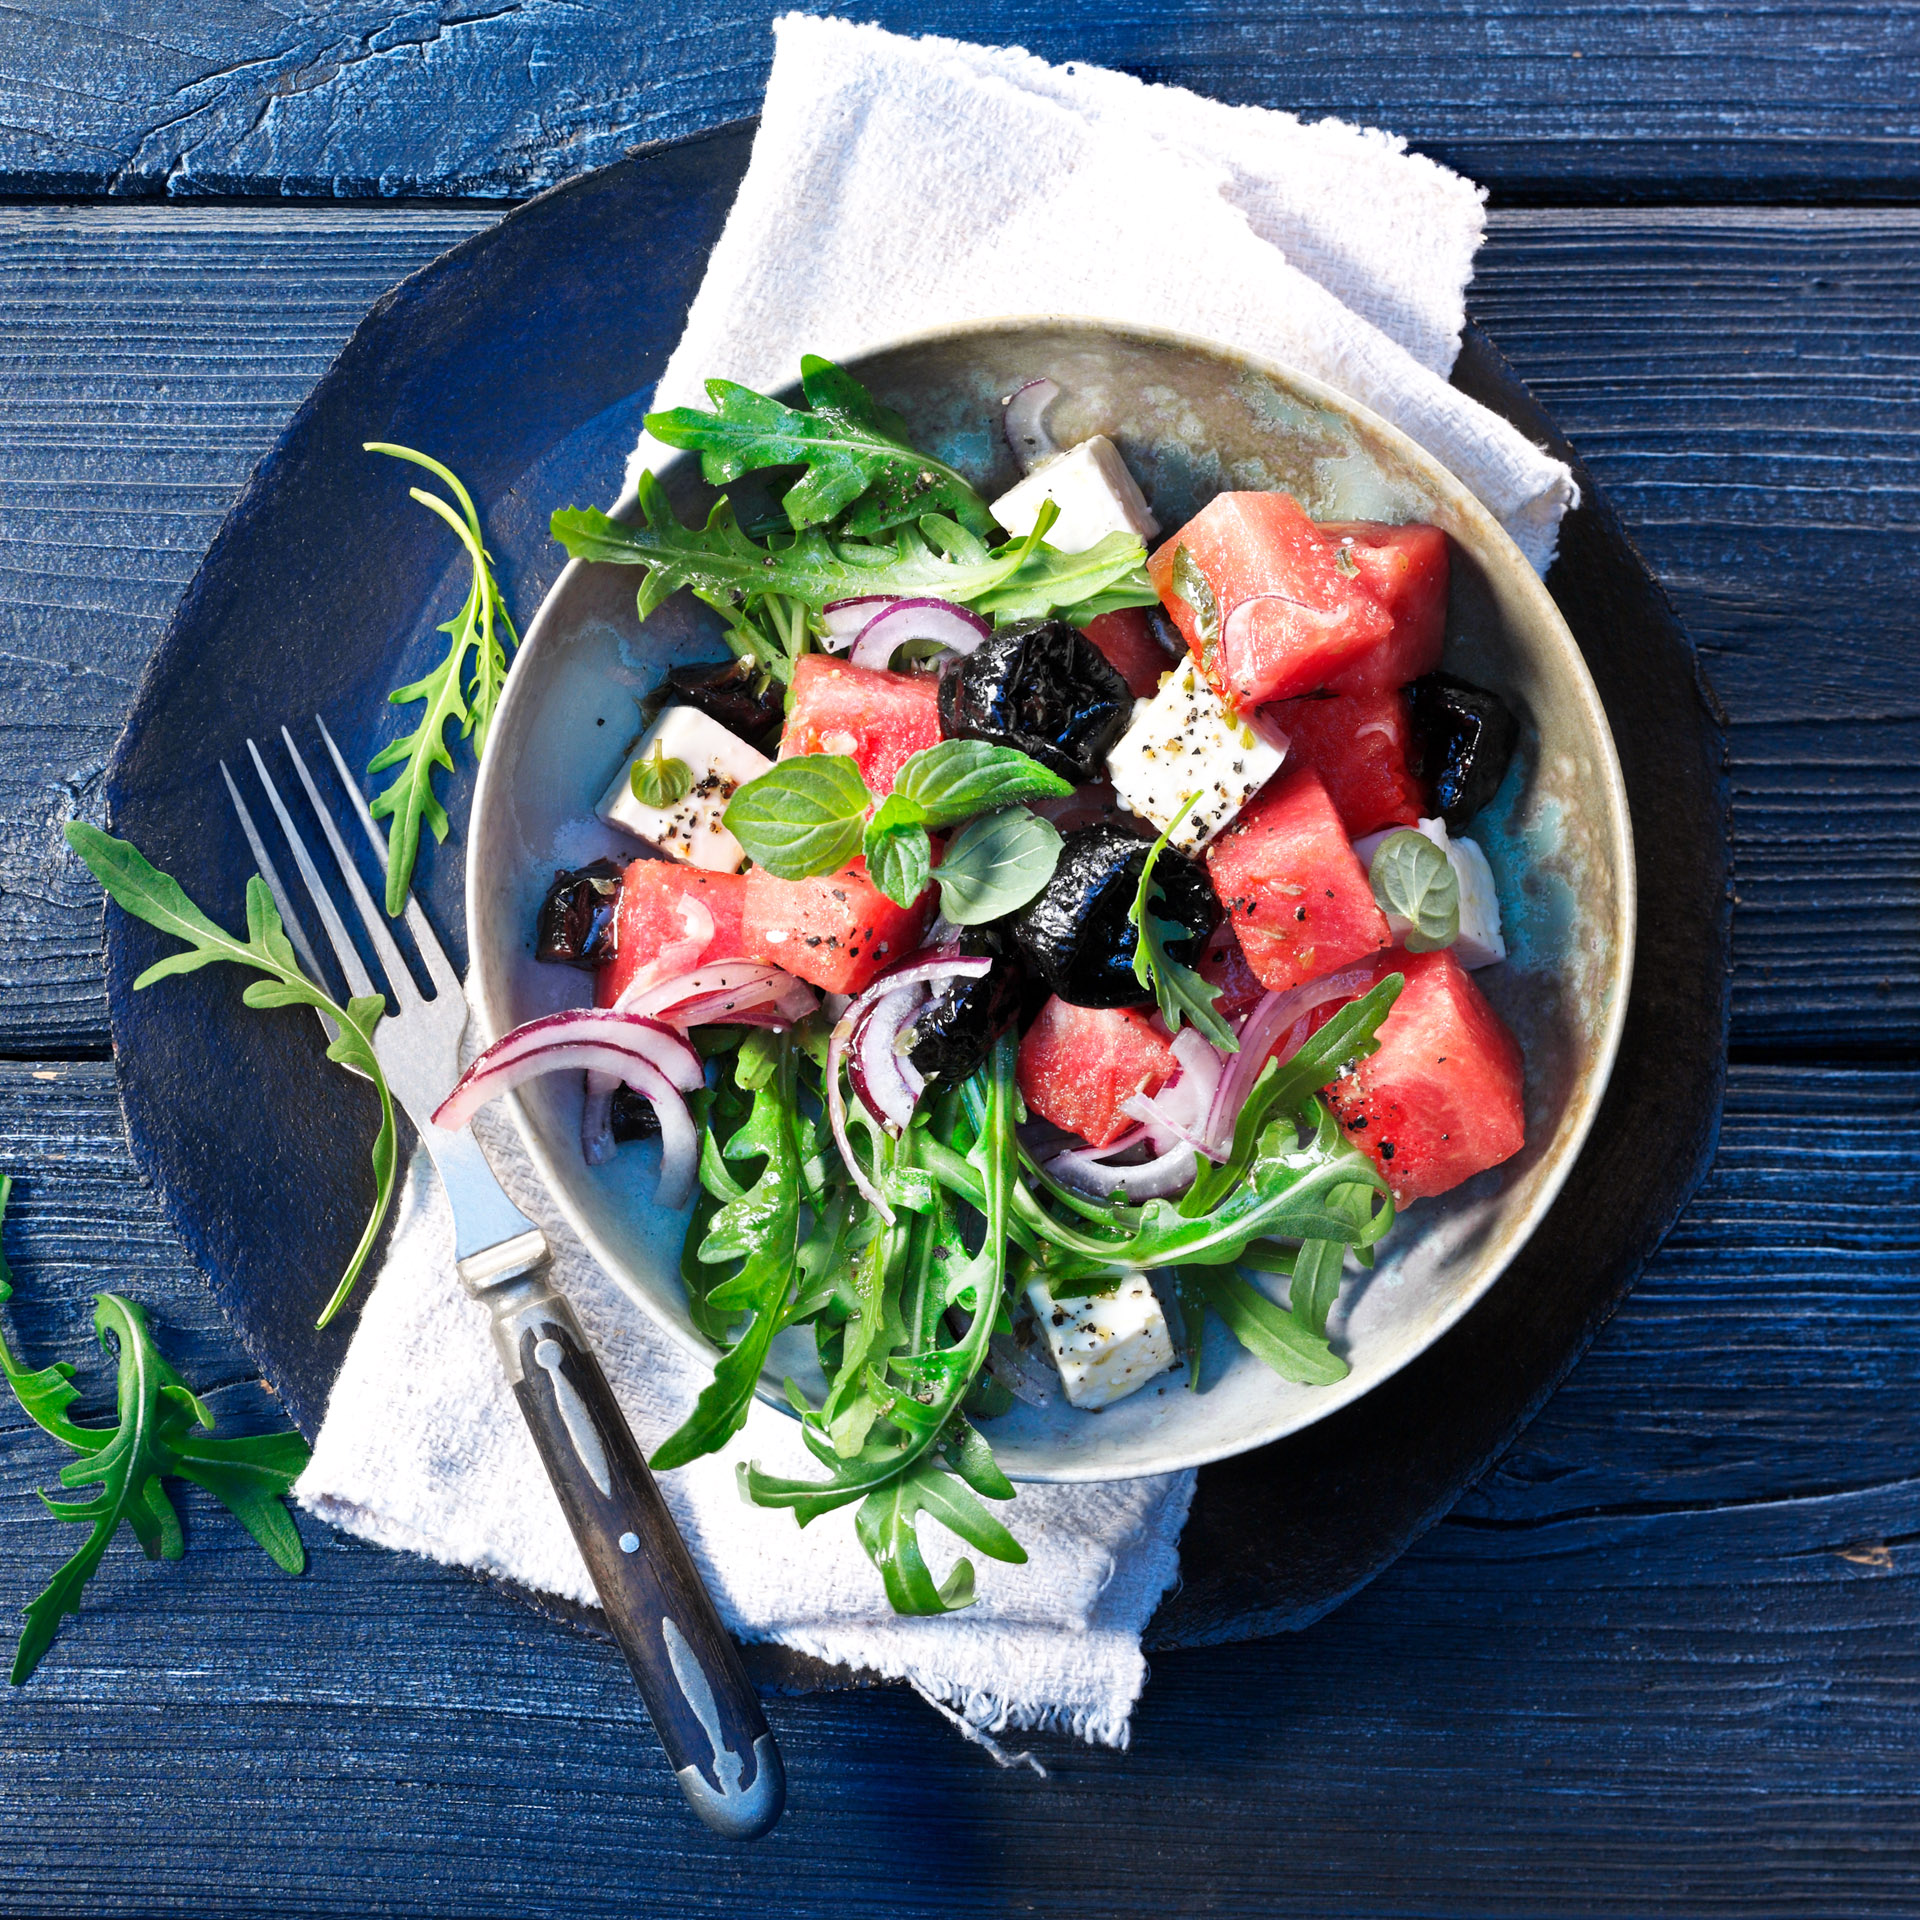 <p>Sweet, juicy watermelon with salty, tangy feta makes for a perfect salad. For added texture and mild sweetness, add in a handful of Diced Prunes. For a rounder flavor in the salad dressing, mix in a teaspoon of Fresh Plum Concentrate. 322 kcal (1347 kJ); protein 9.8 g; fat 22.5 g; carbohydrates 19.3 g</p>